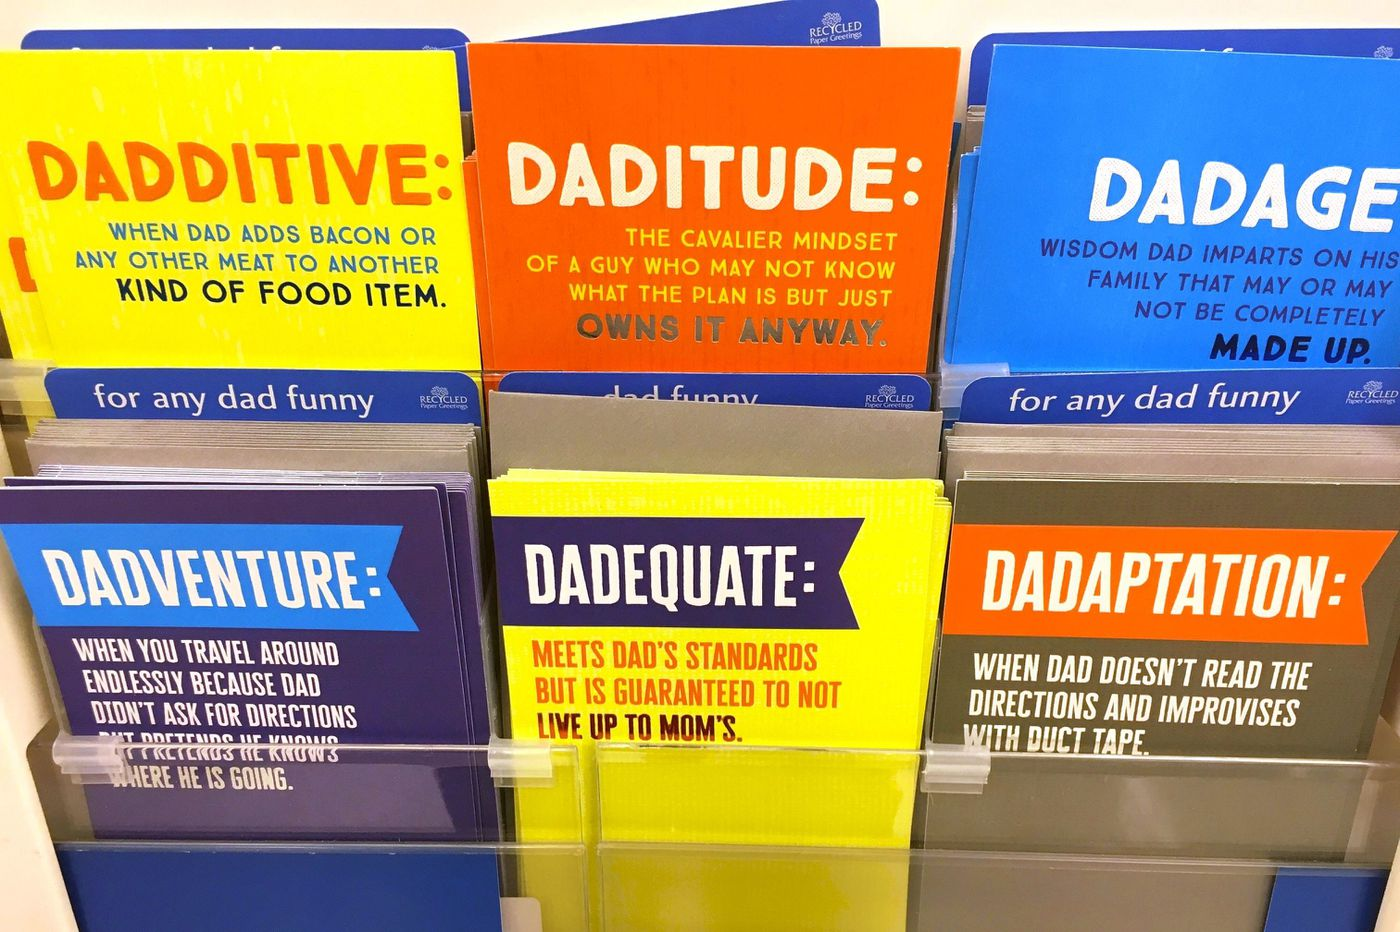 Father's Day cards: Instead of saying 'I love you, Dad,' society tells us to make a fart joke | Opinion